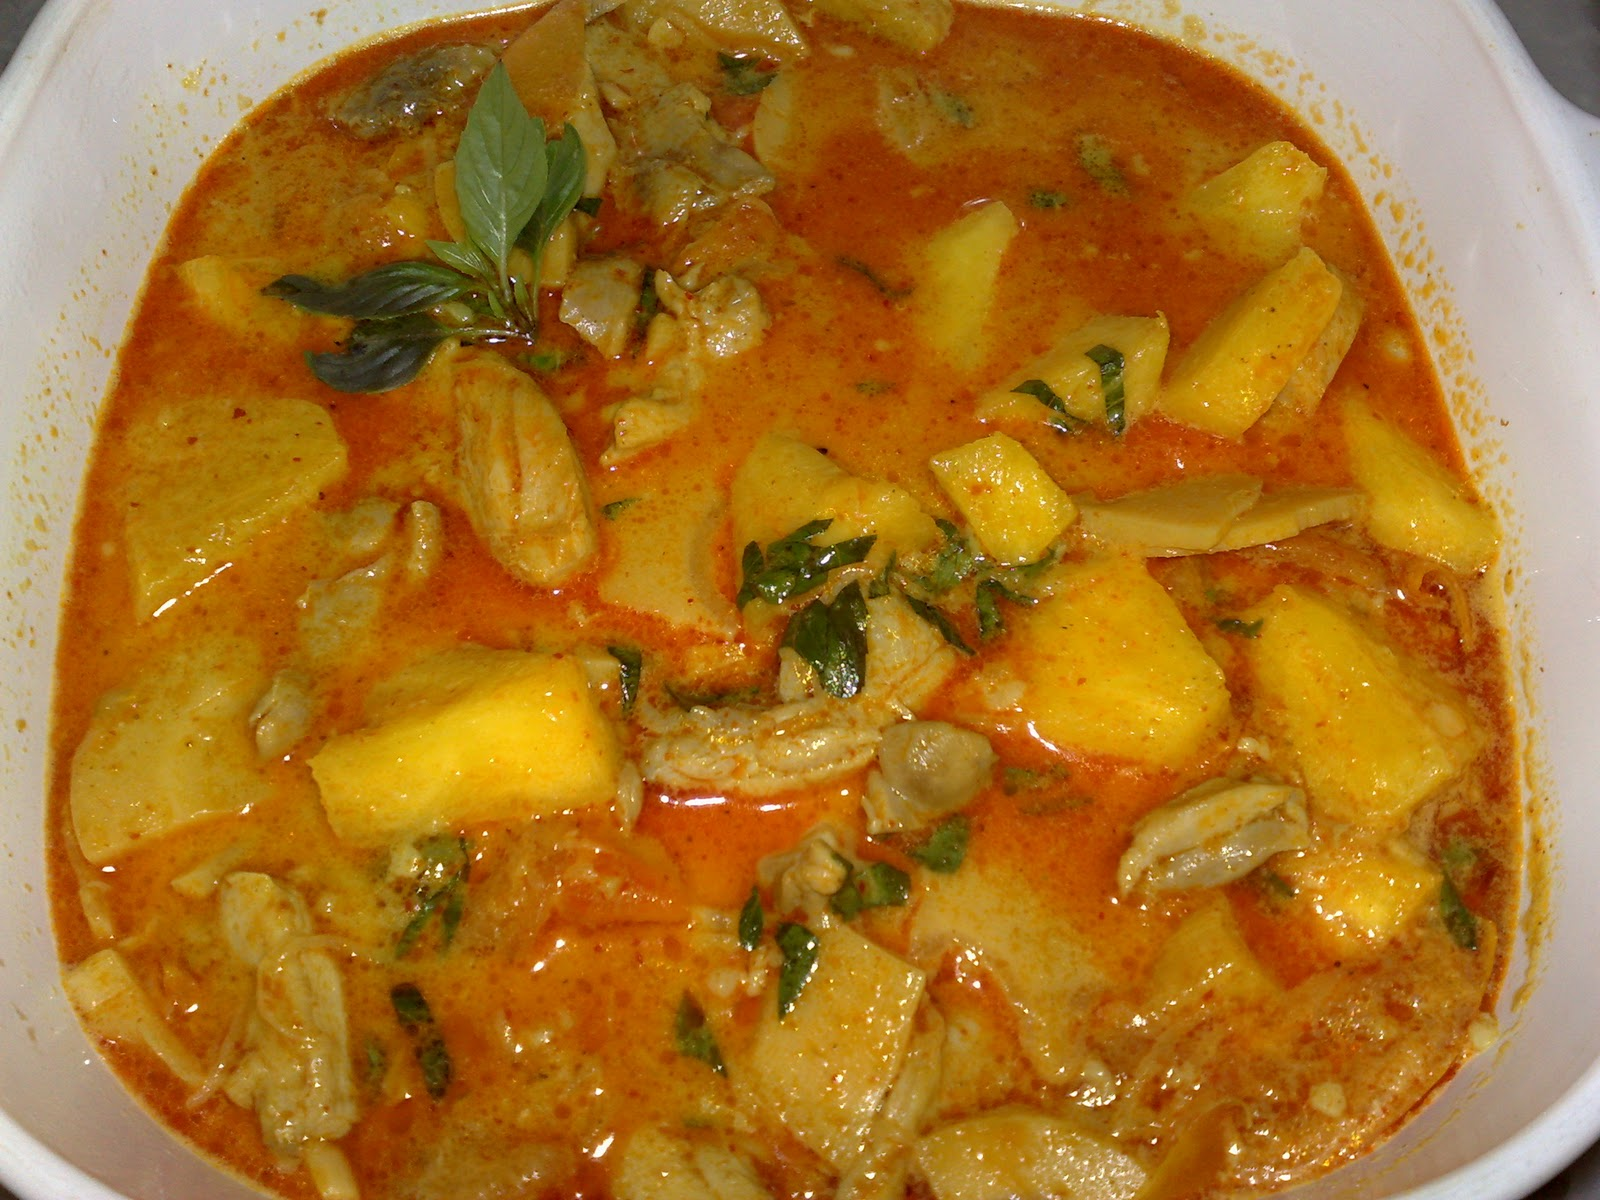 Paglin Treasured Recipes: Thai Chicken Pineapple Curry